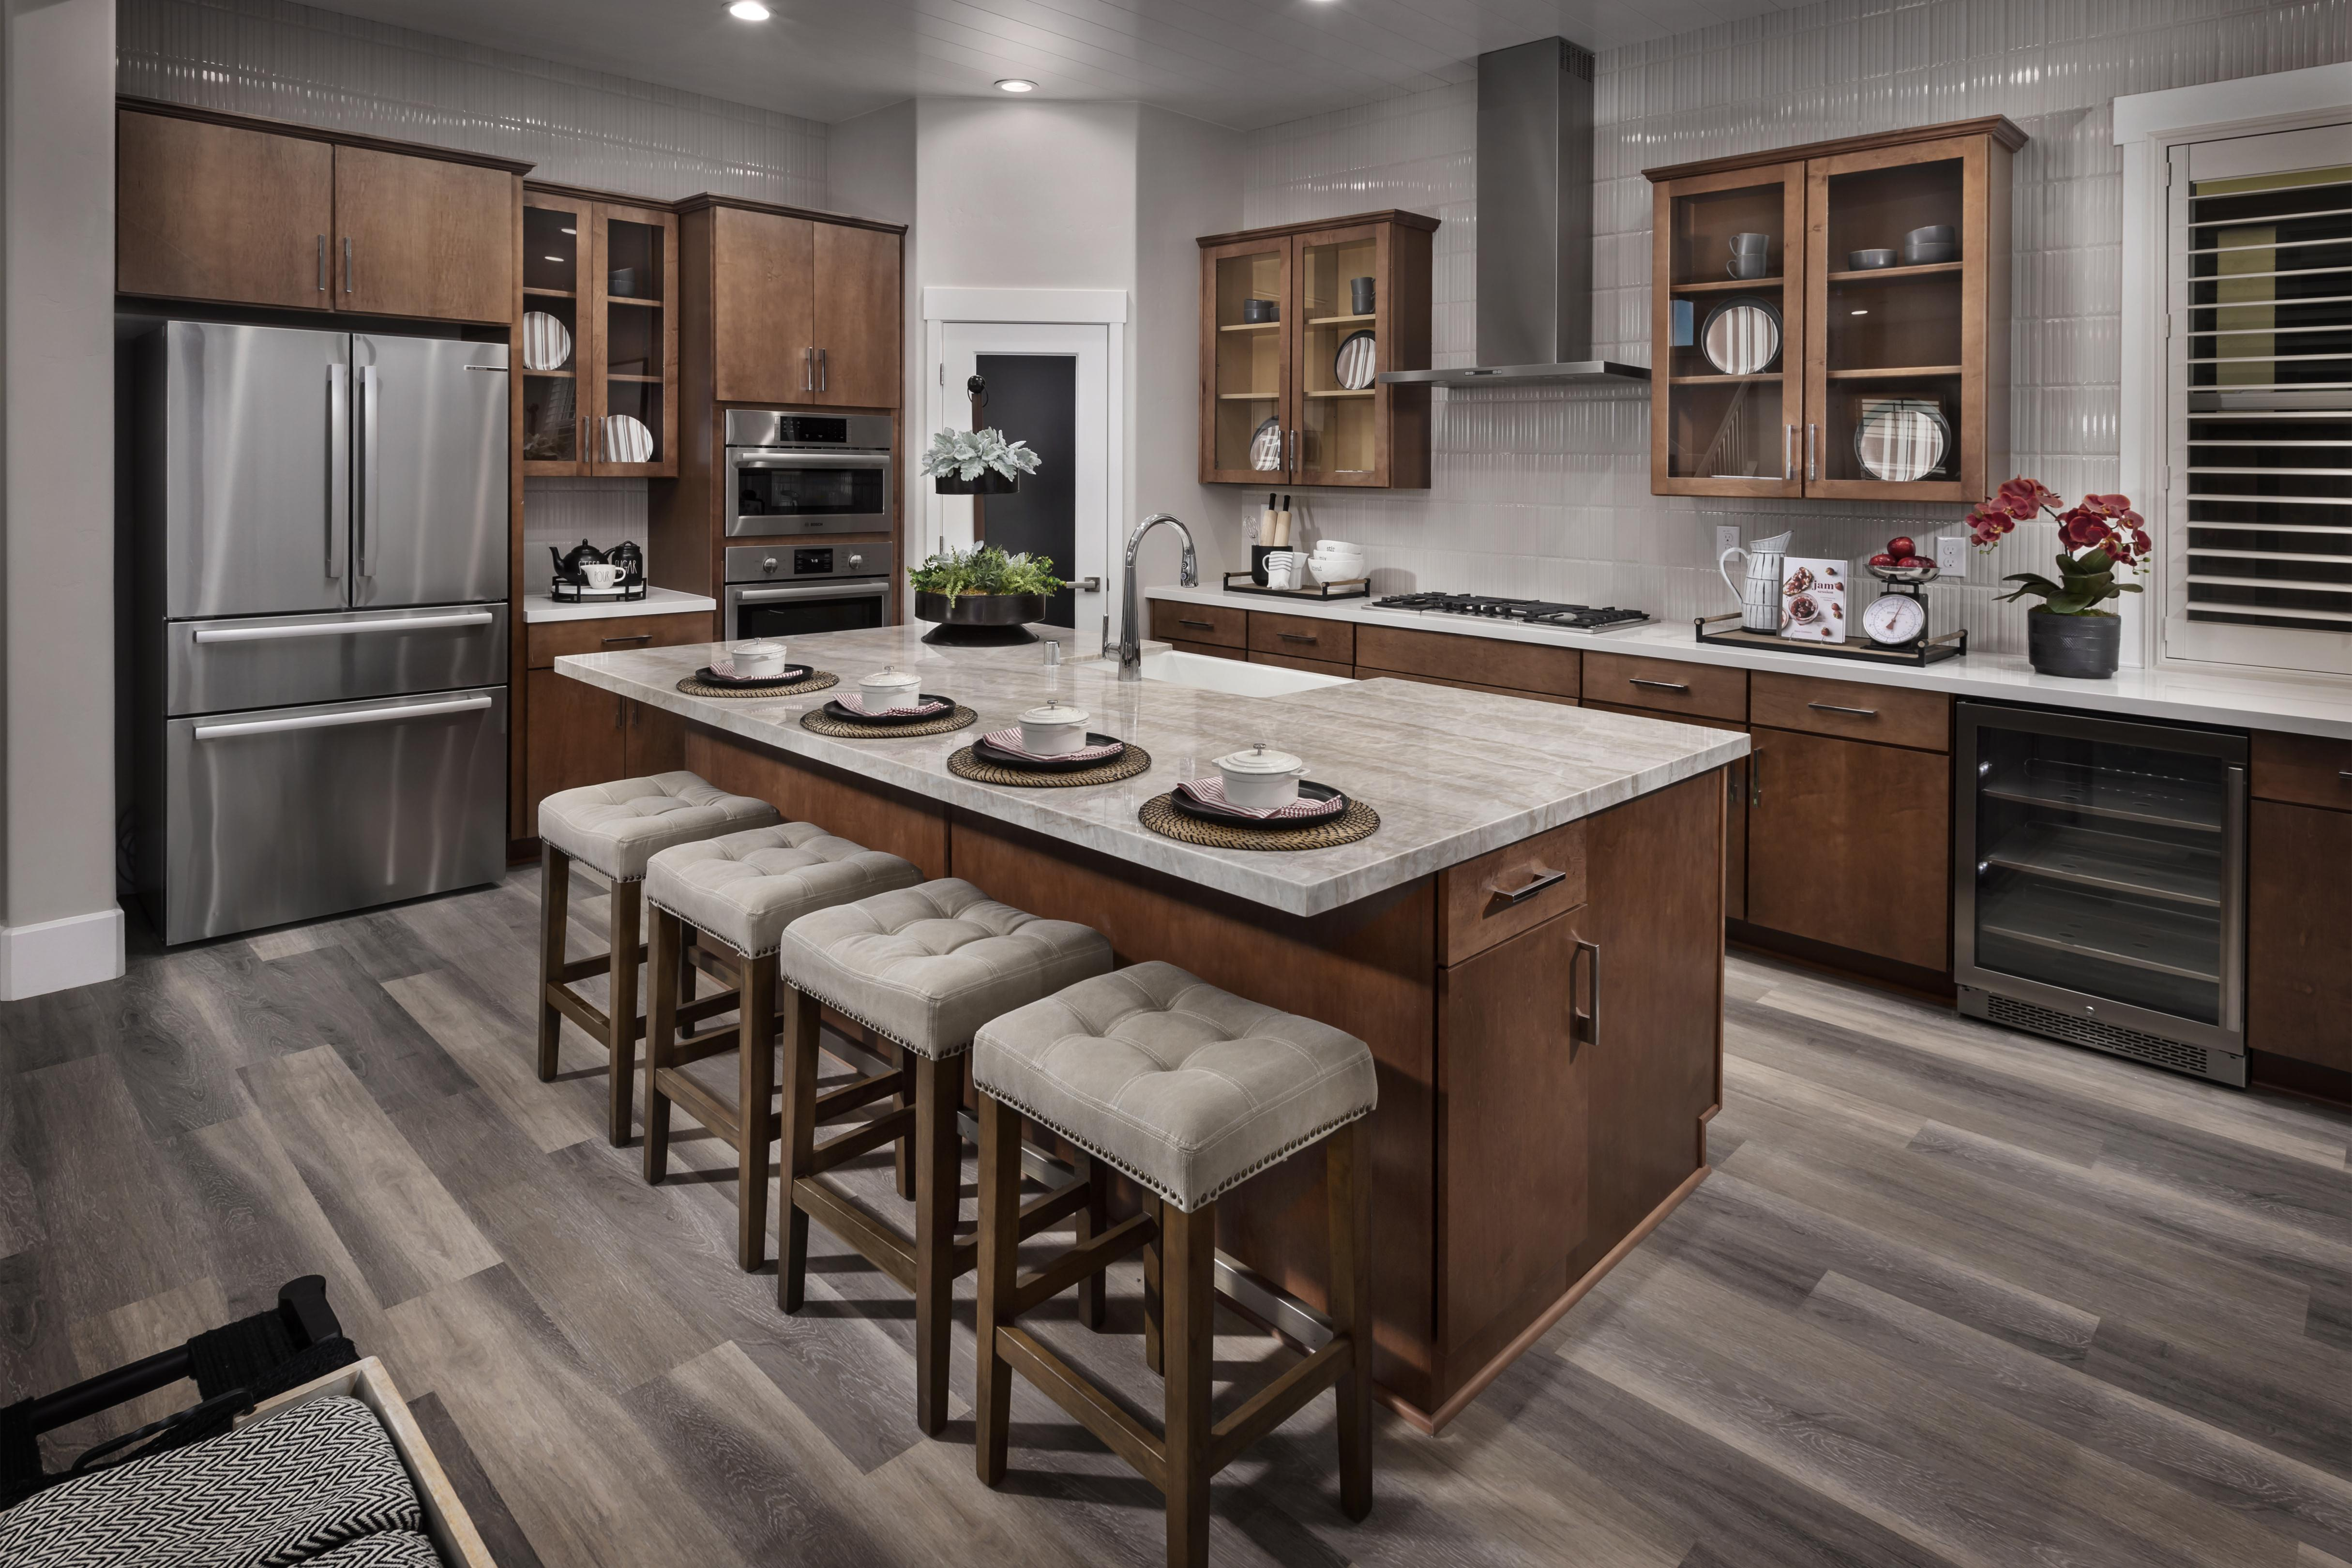 Kitchen featured in the Residence Two By Tim Lewis Communities in Sacramento, CA